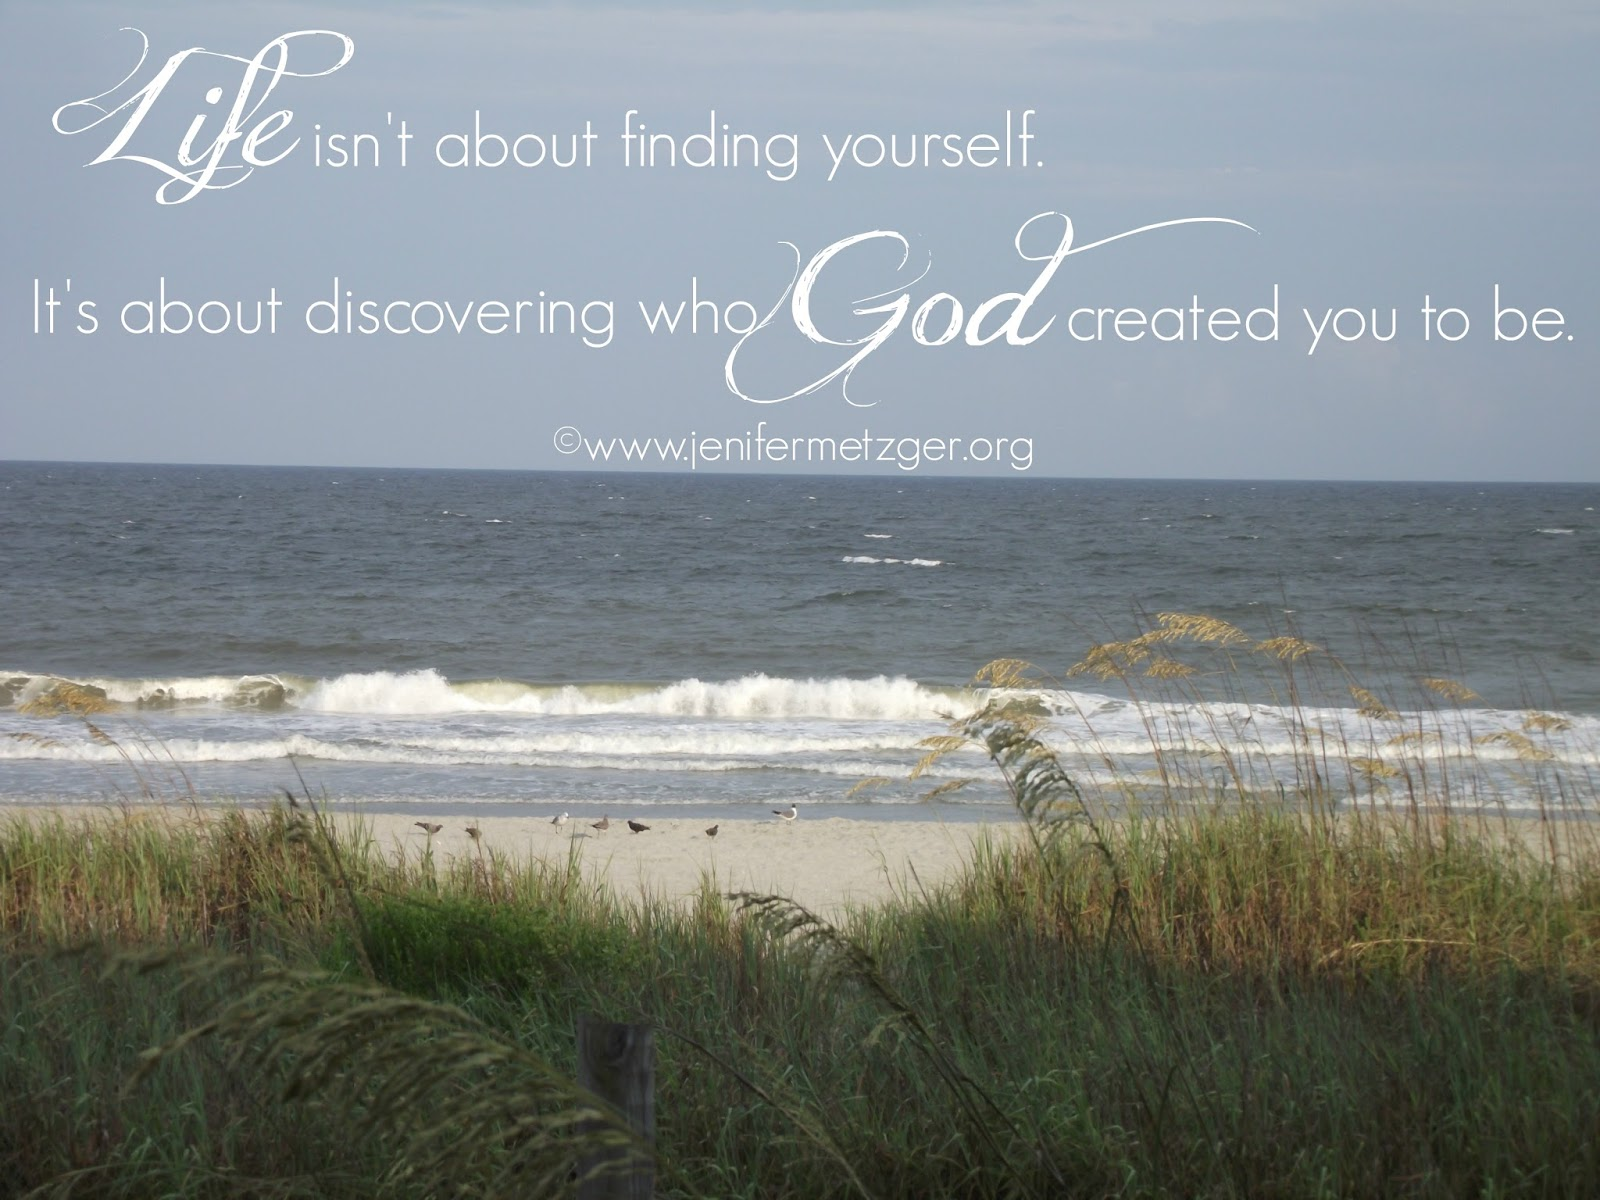 Discovering who #God created you to be. #atlasgirl